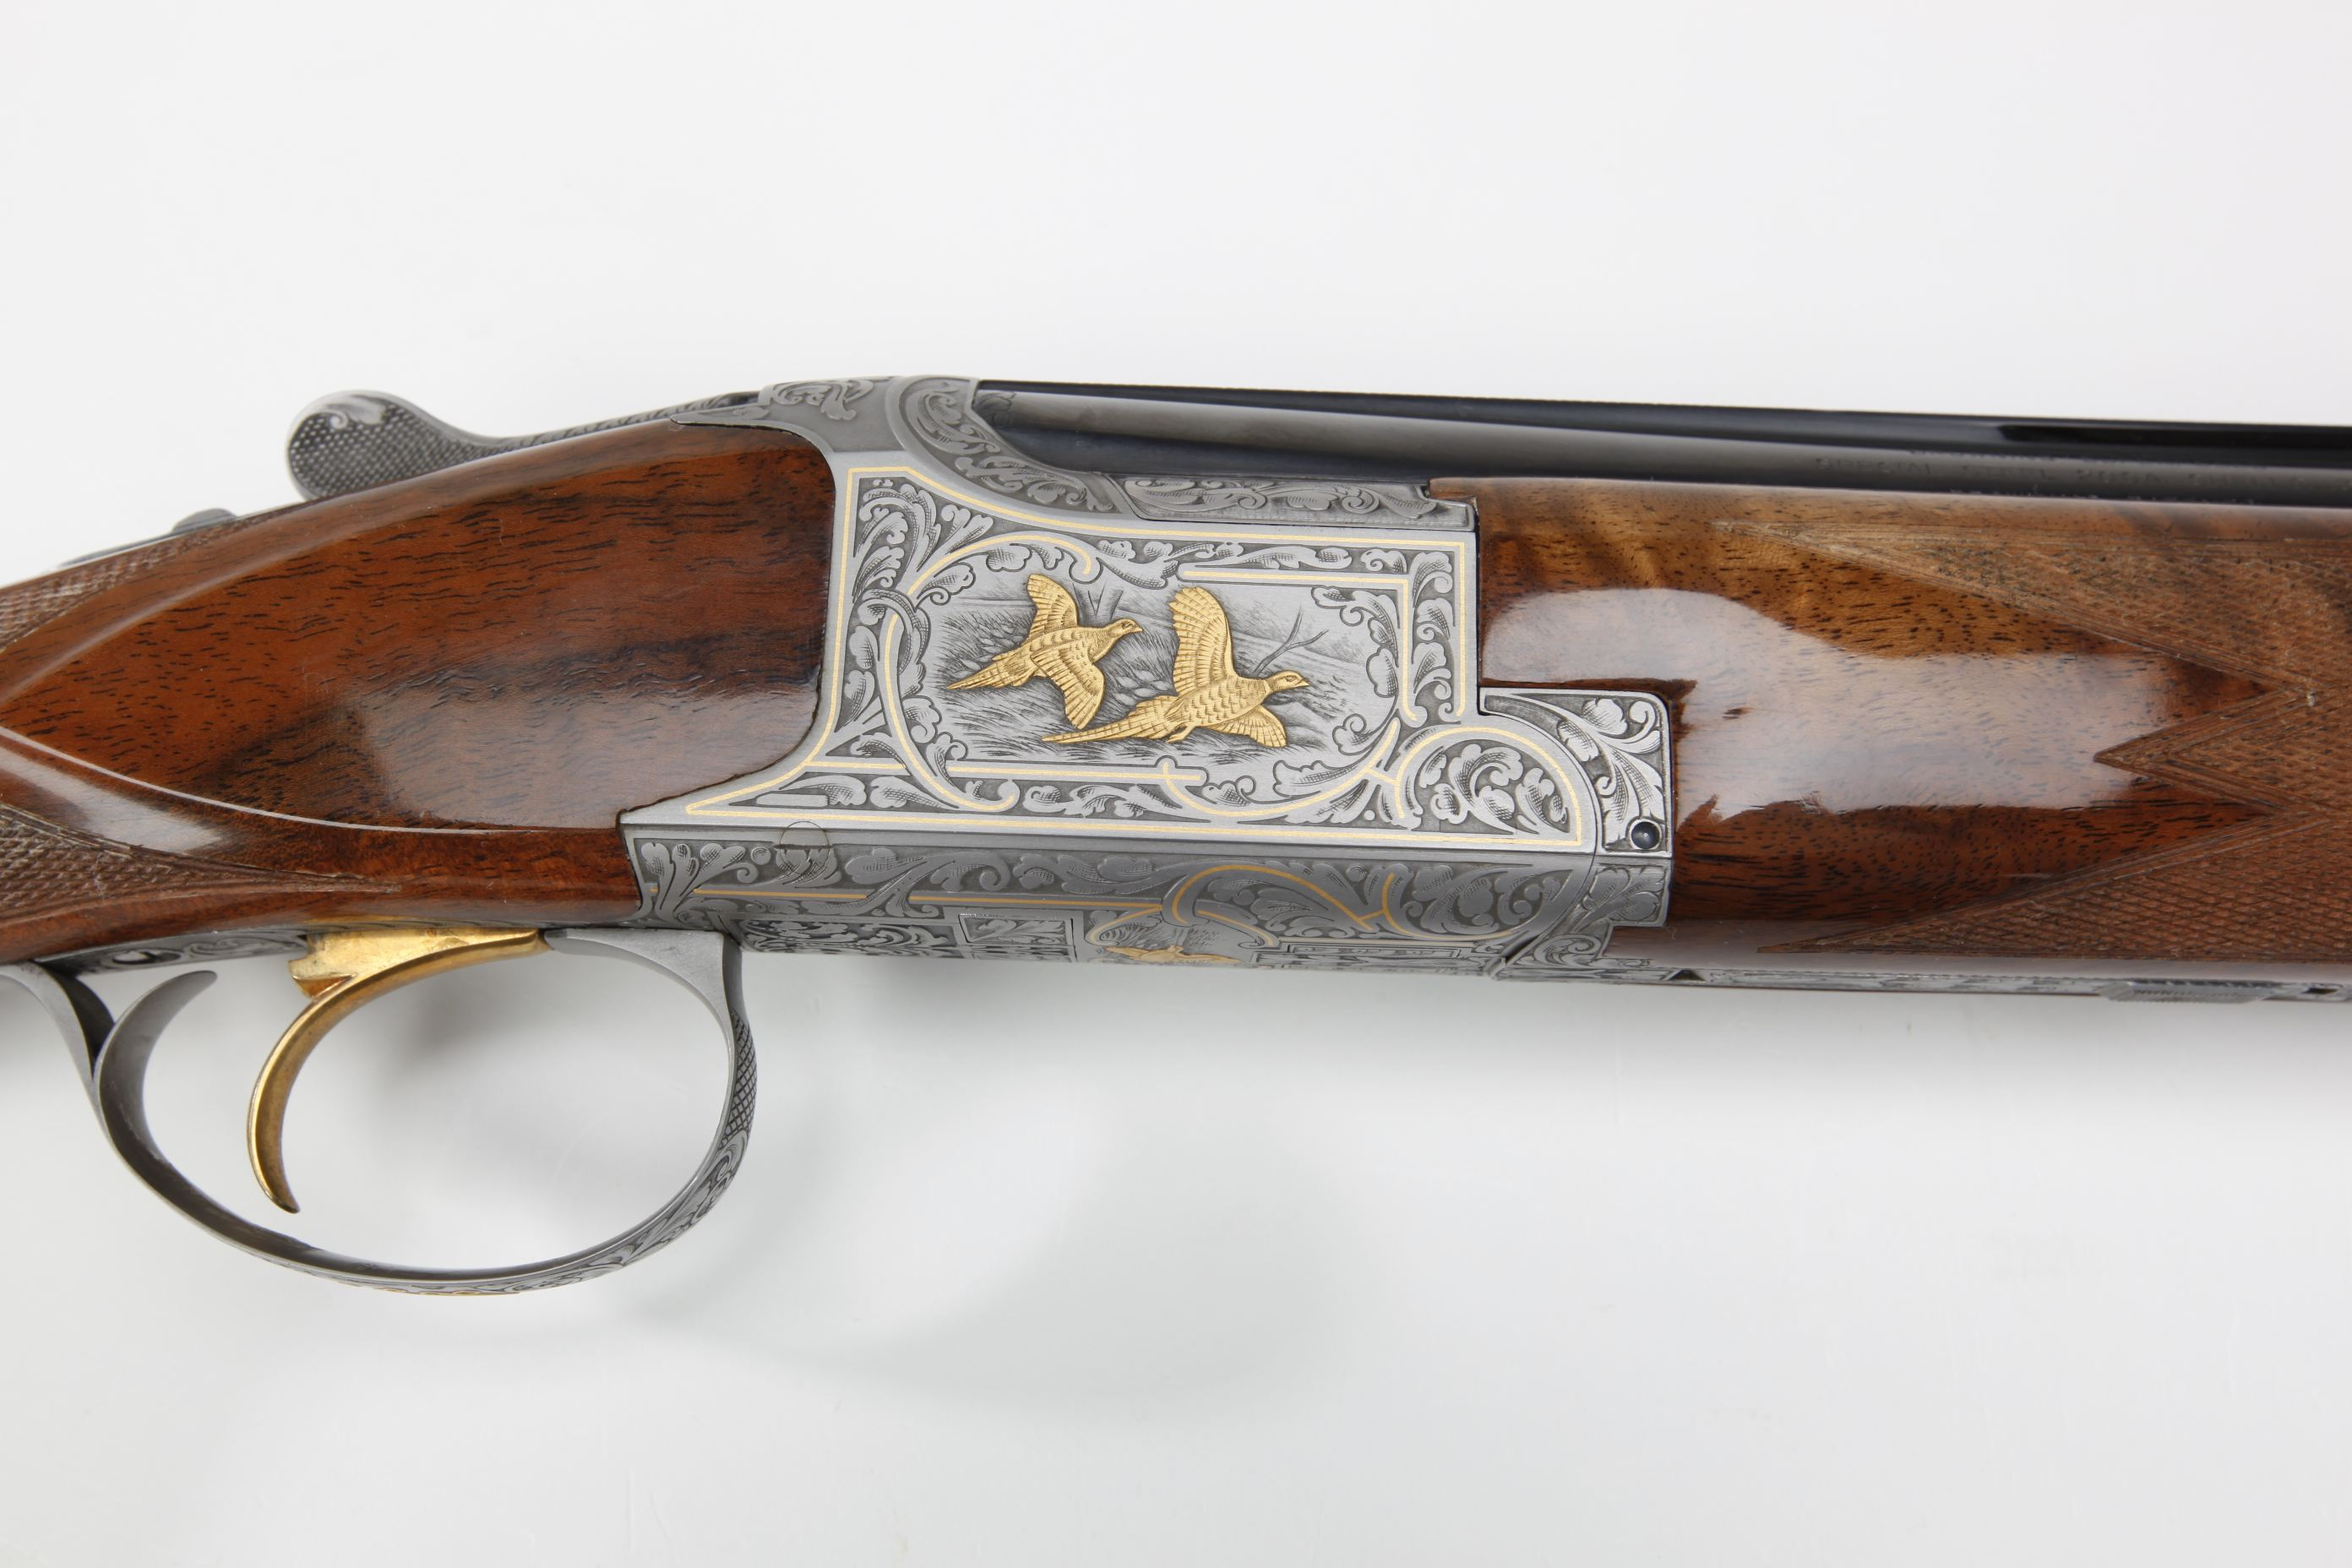 Browning (Liege, Belgium) Superposed Shotgun